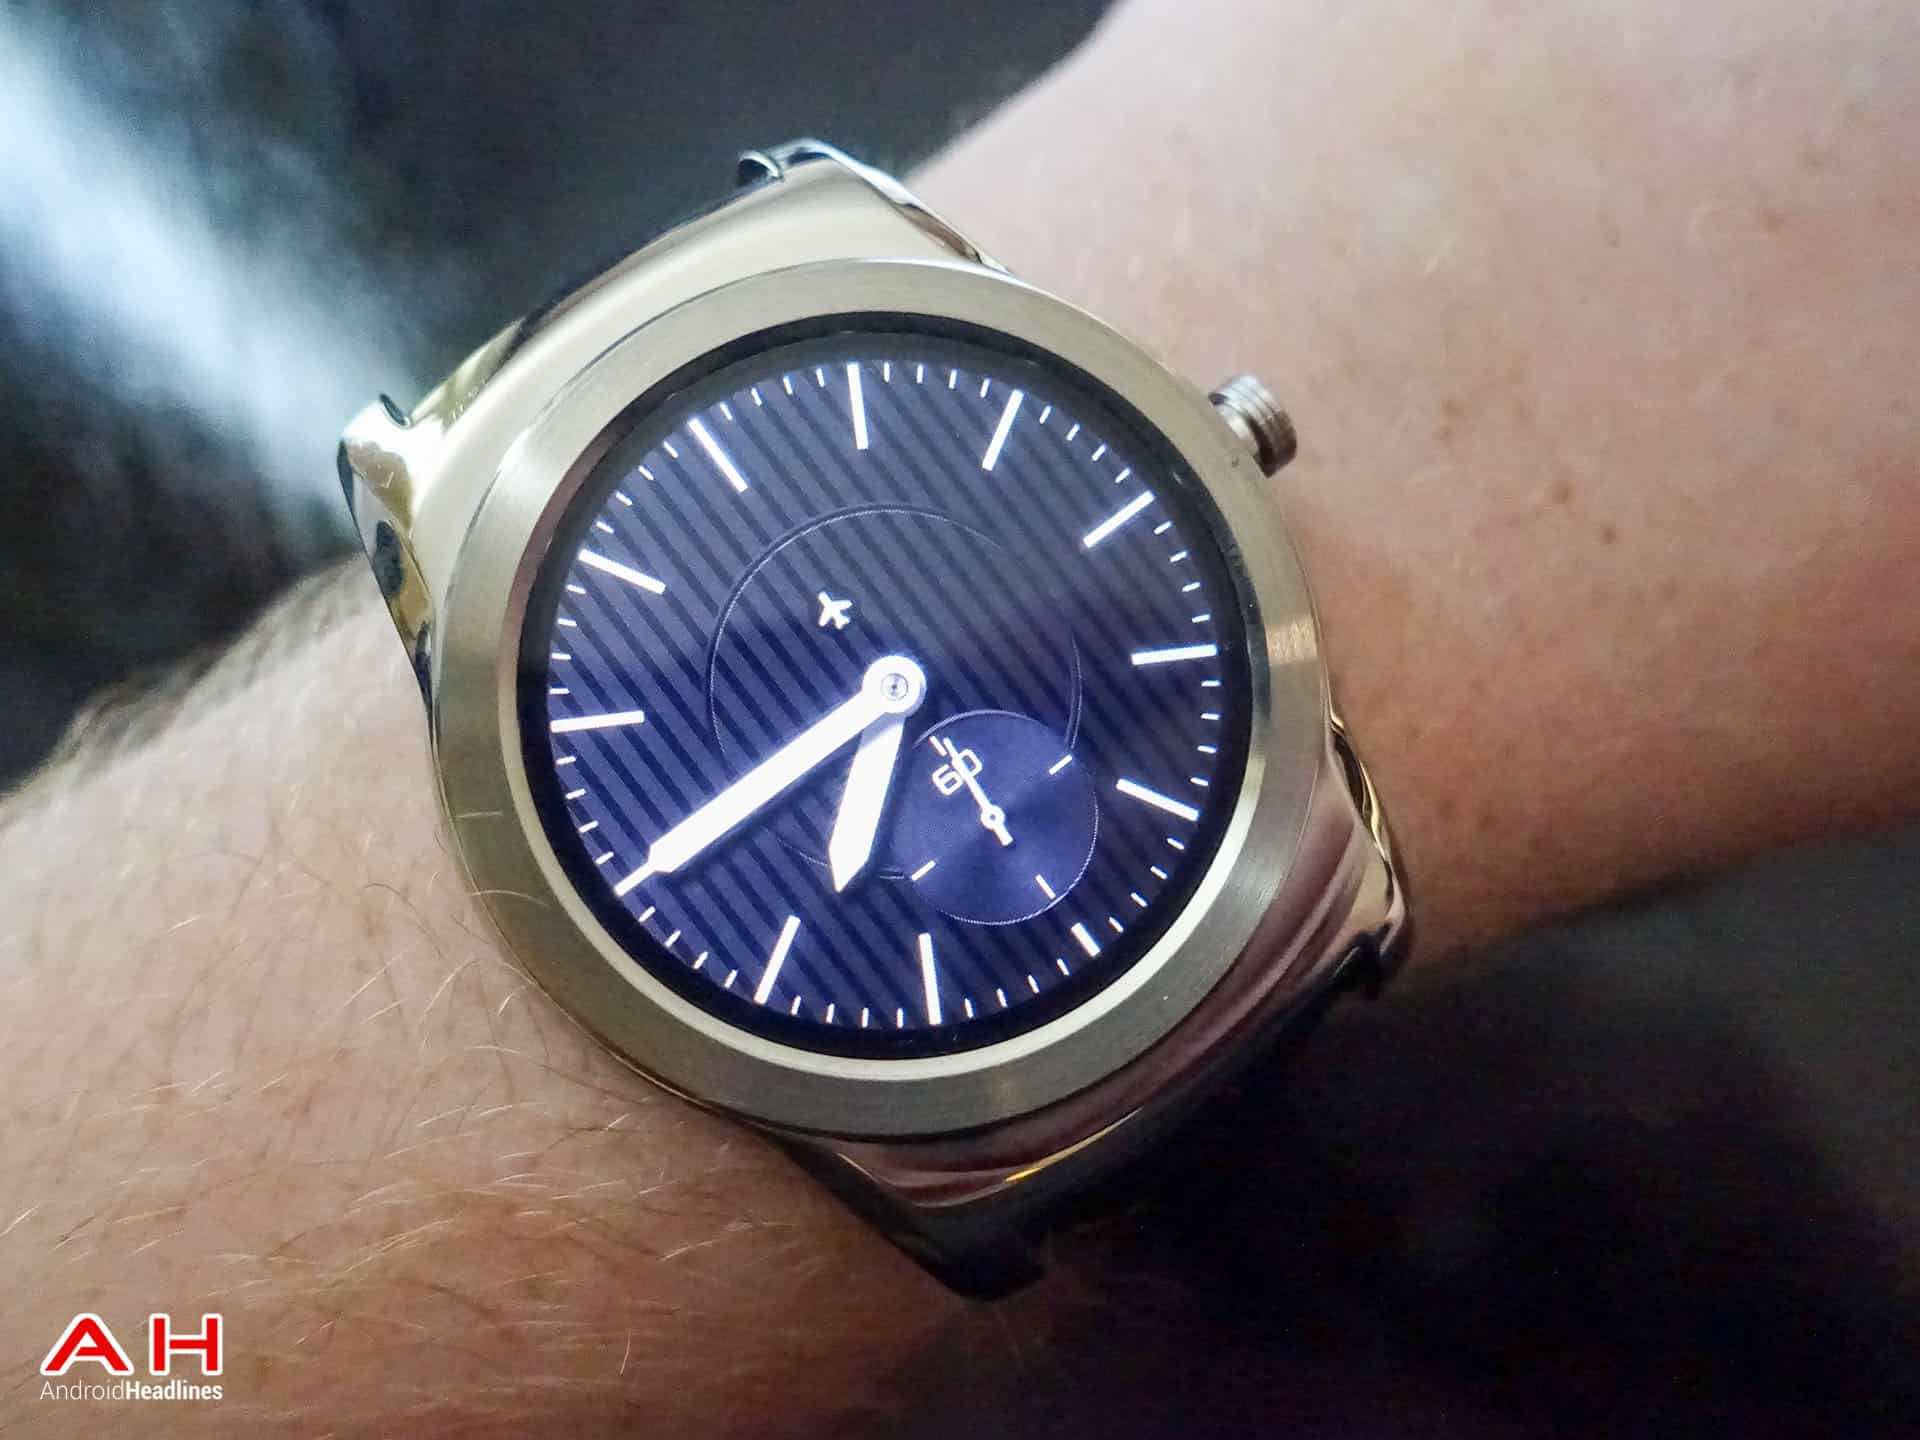 LG-Watch-Urbane-Review-AH-23